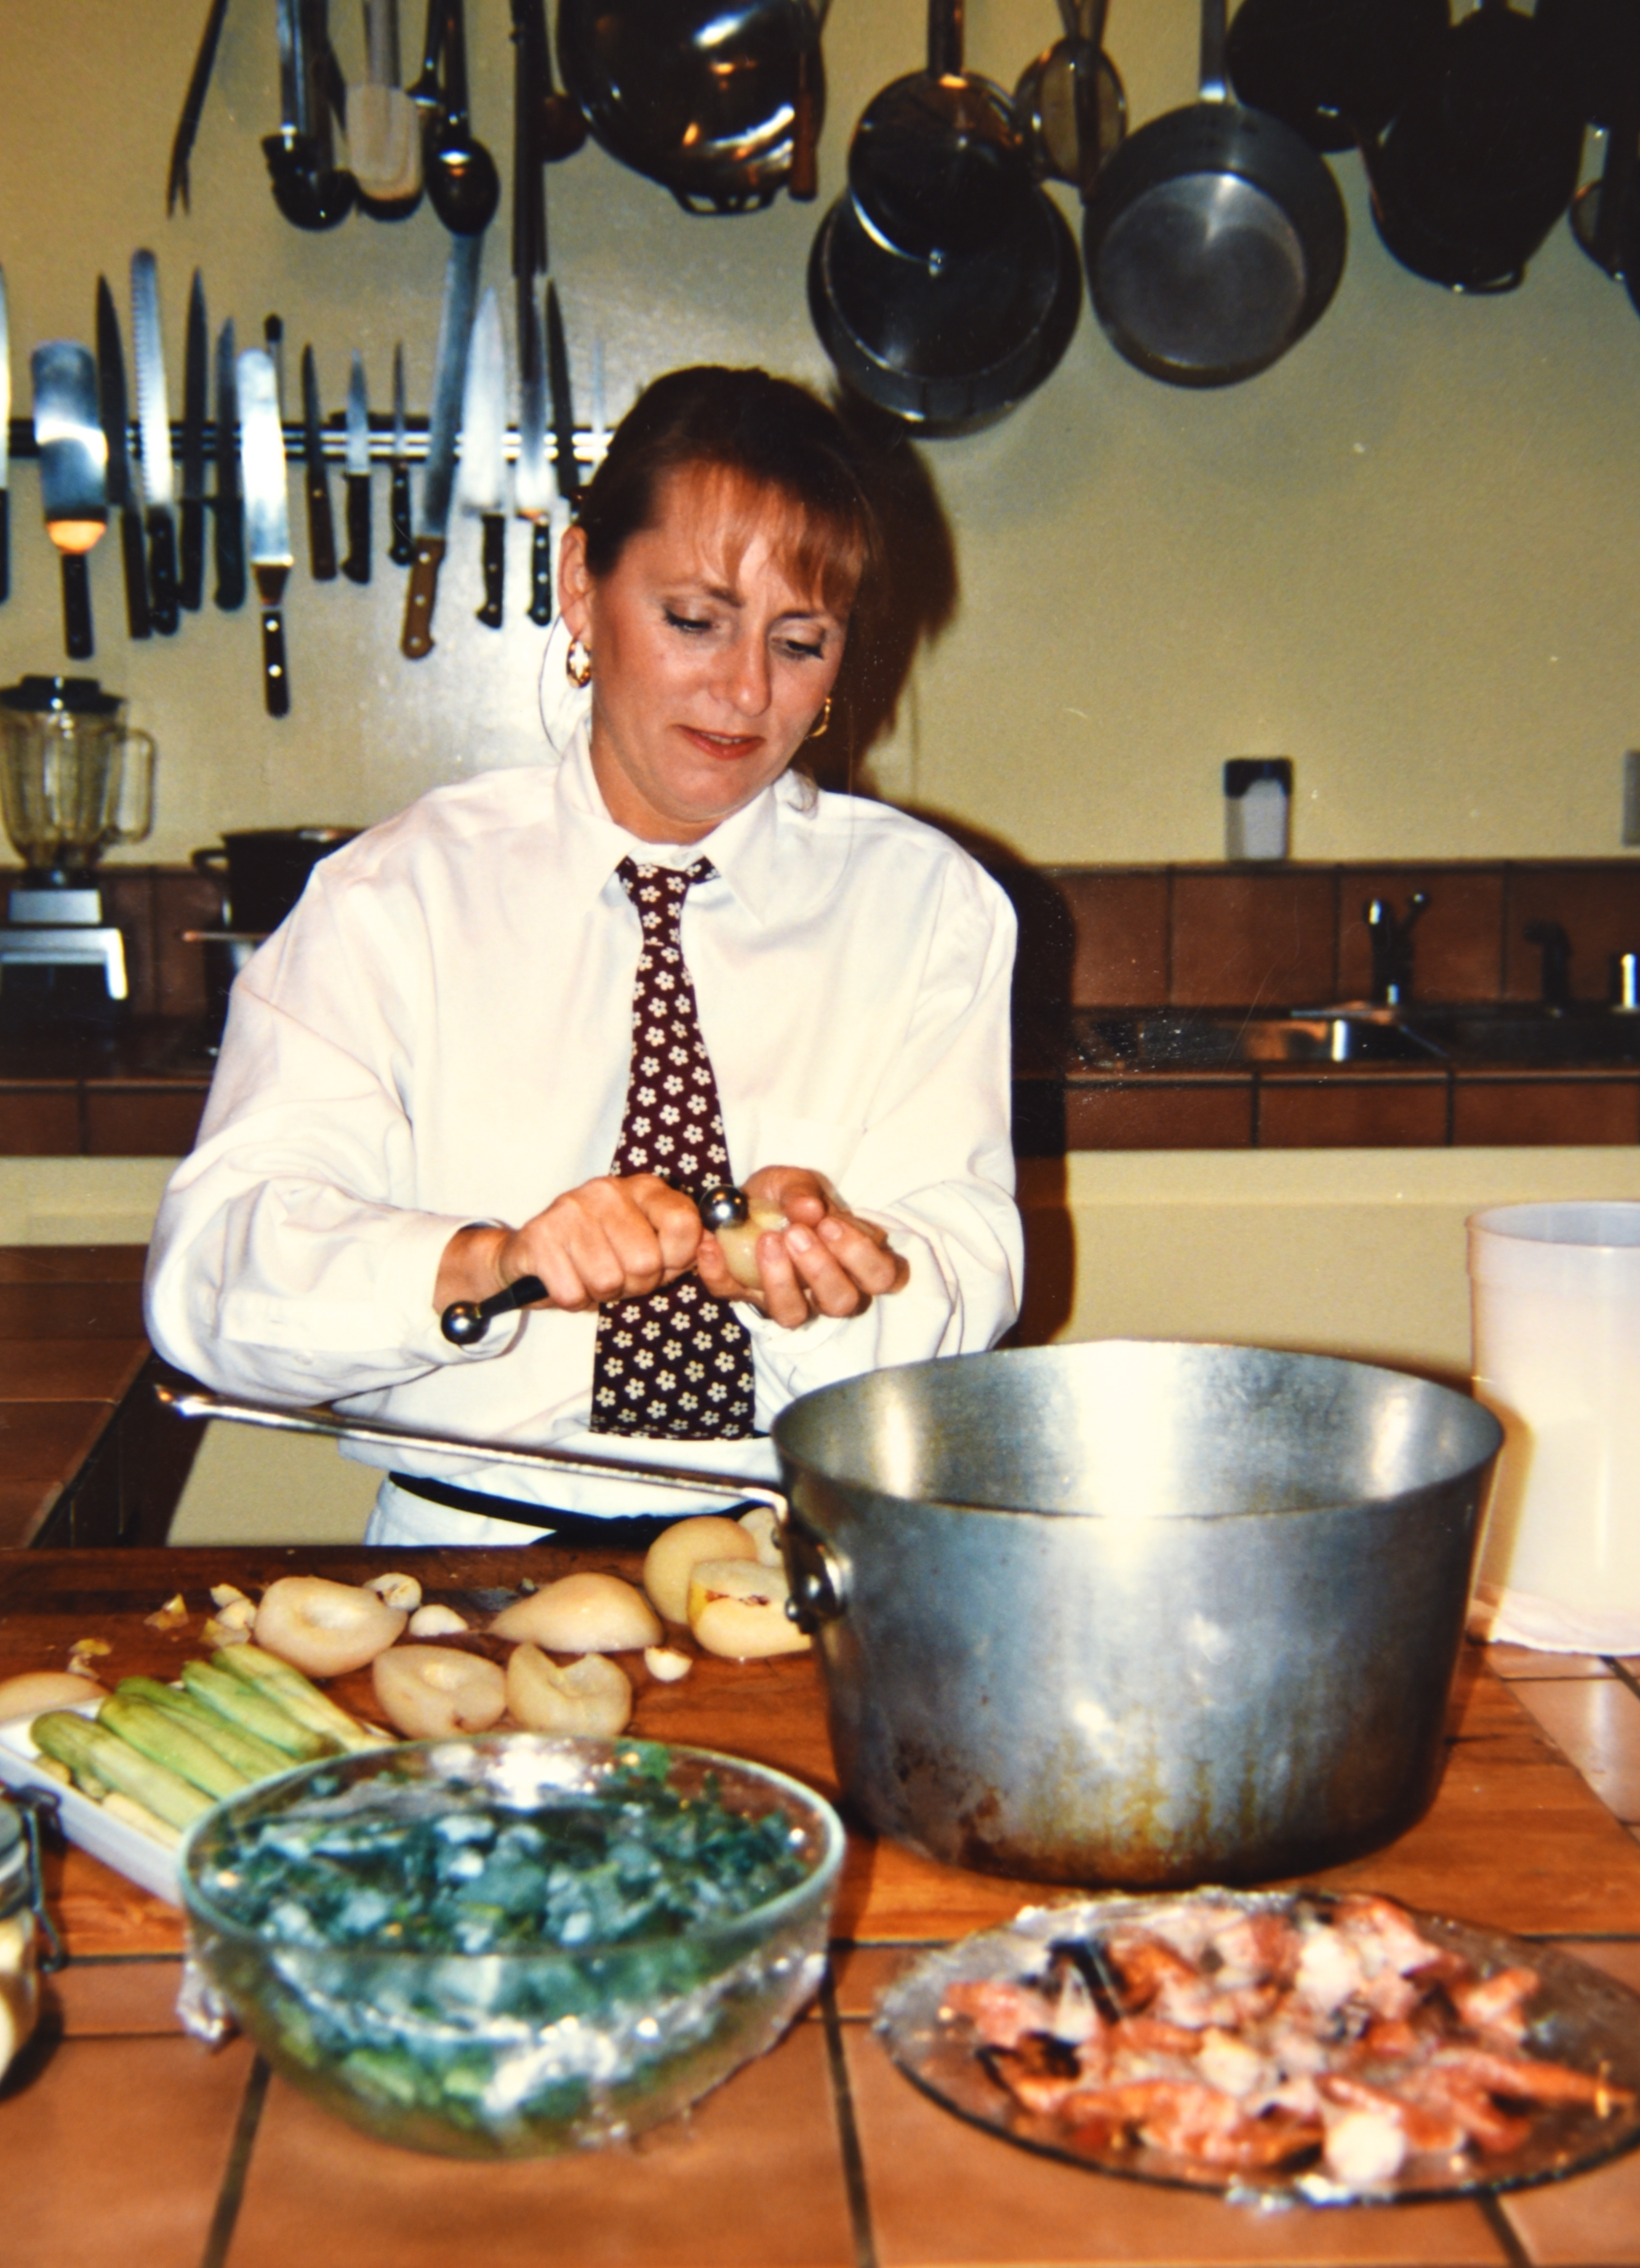 Chef/Owner Nancy Zimmer at the original Kitchen location on Marconi Avenue